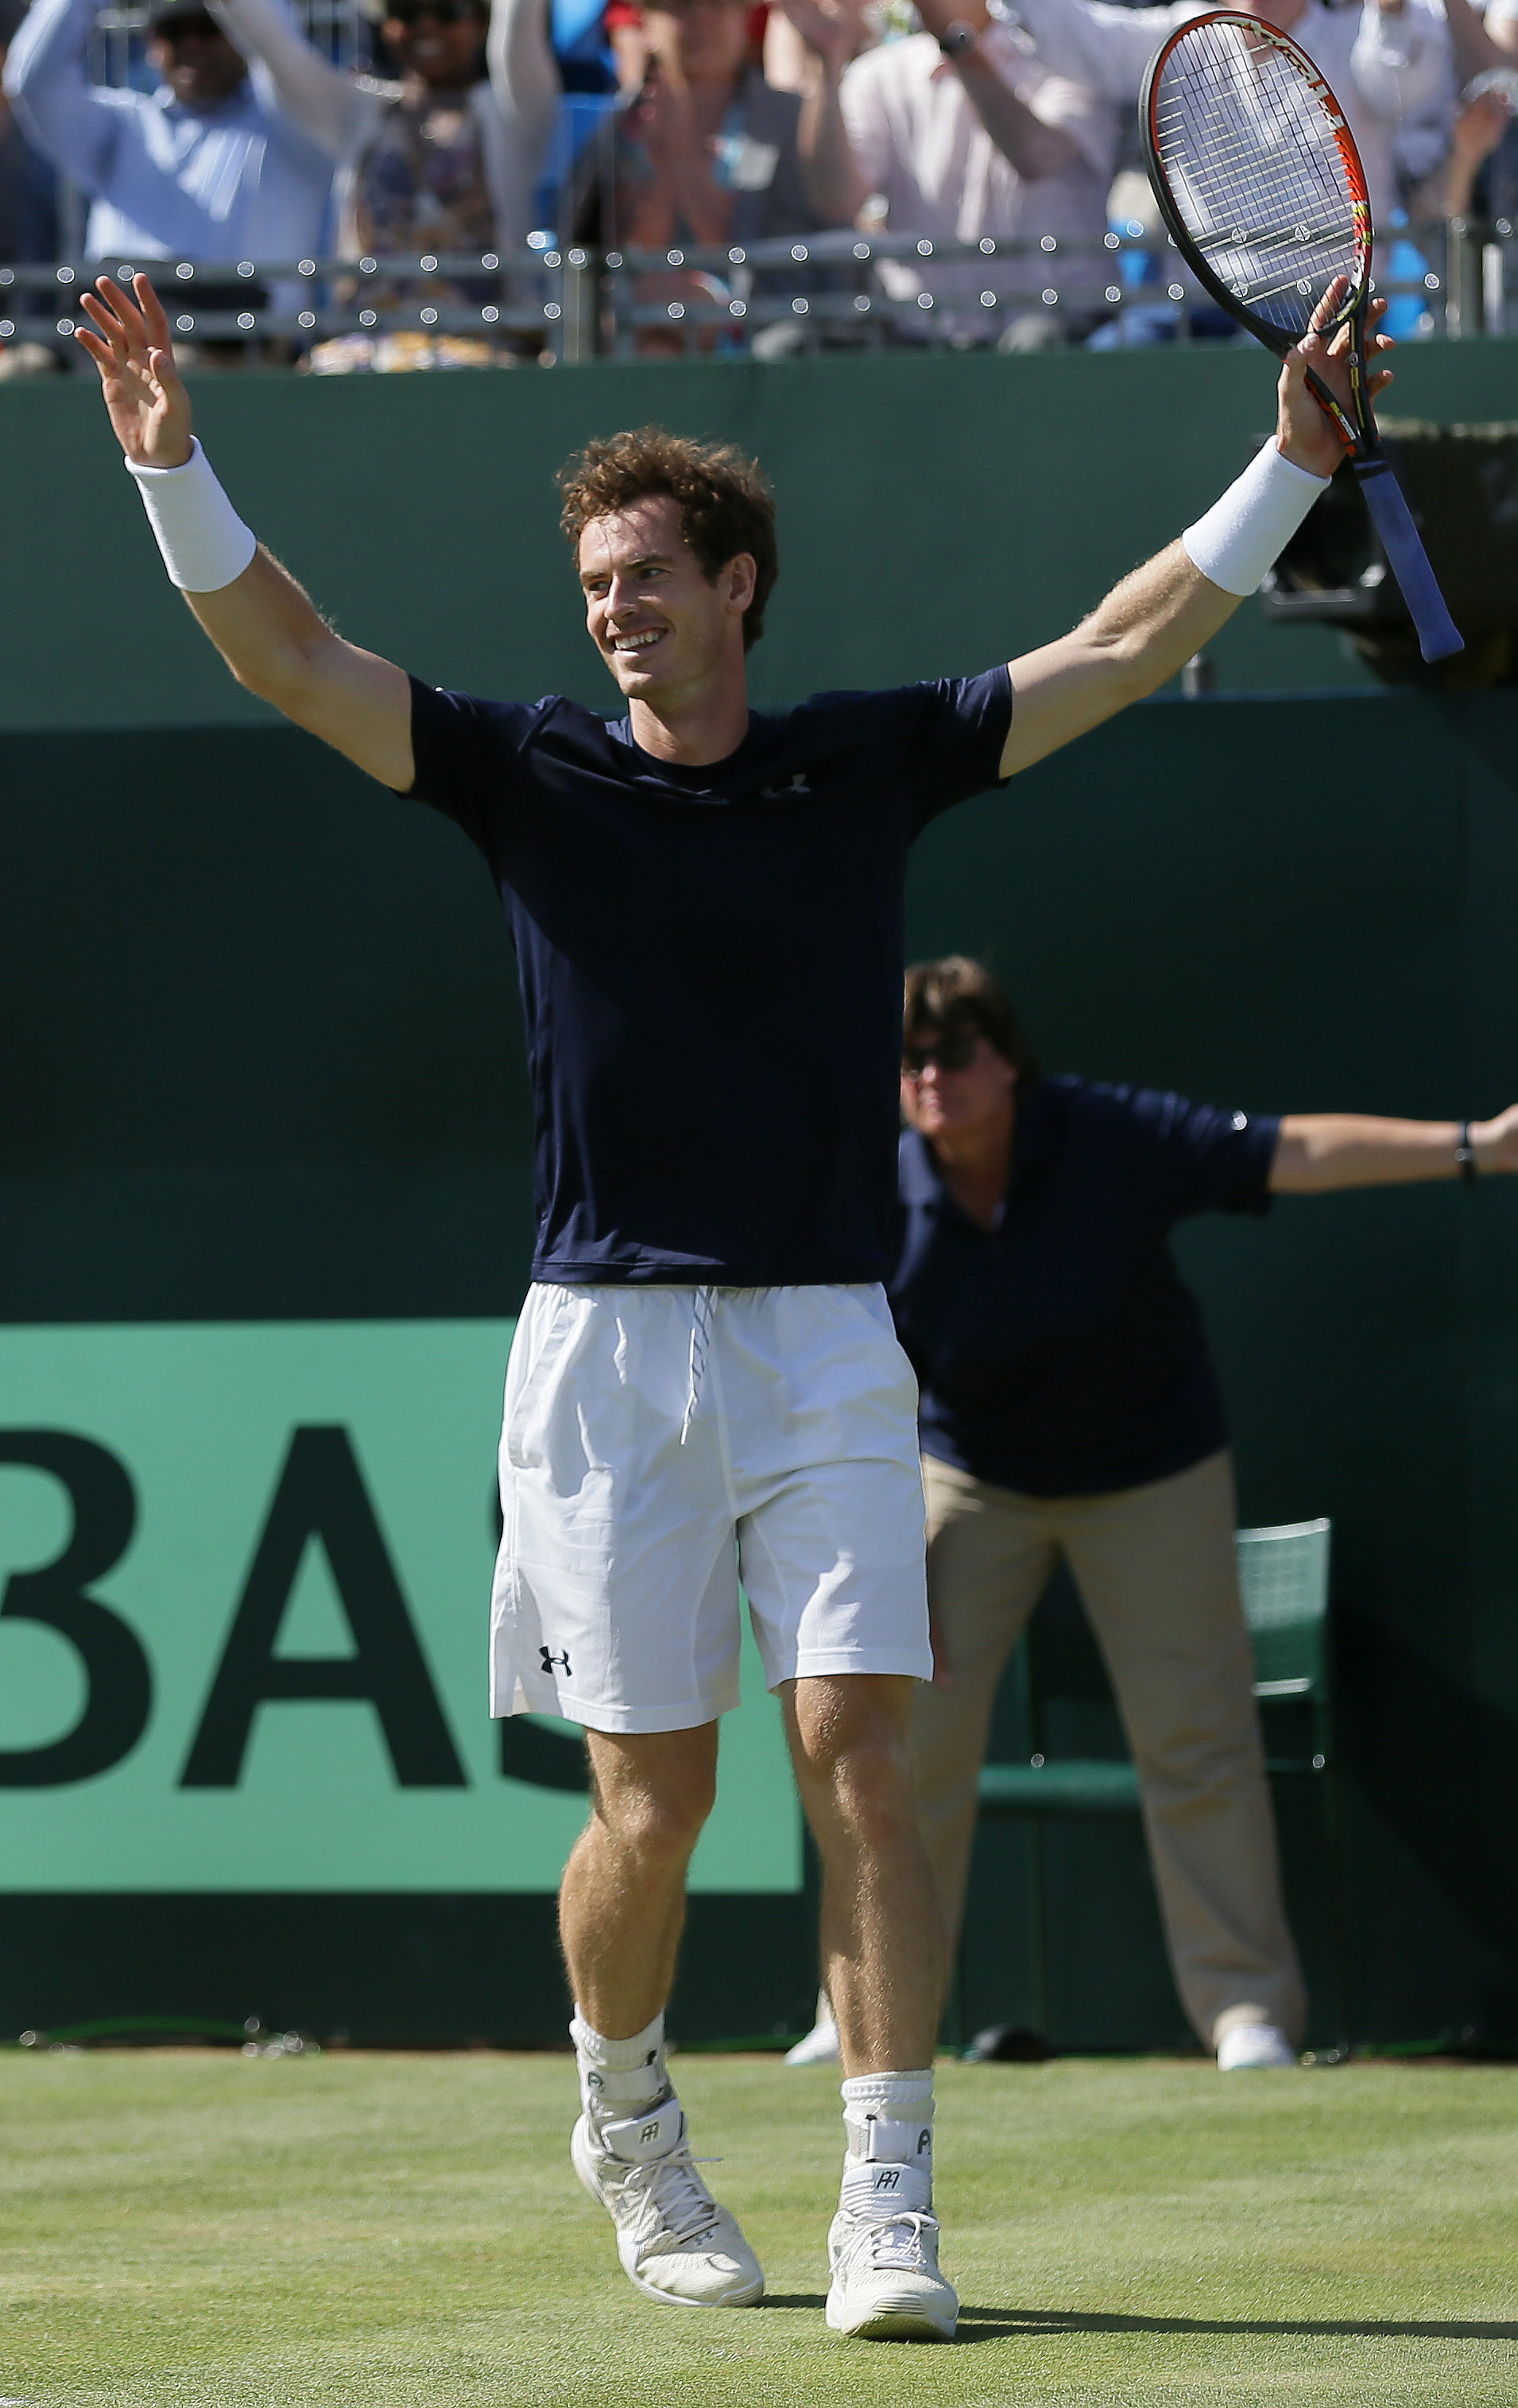 Britain's Andy Murray celebrates beating France's Gilles Simon, taking Britain to the semifinal stage, during the quarterfinal tennis matches of the Davis Cup at the Queen's Club in London, Sunday July 19, 2015. (AP Photo/Tim Ireland)